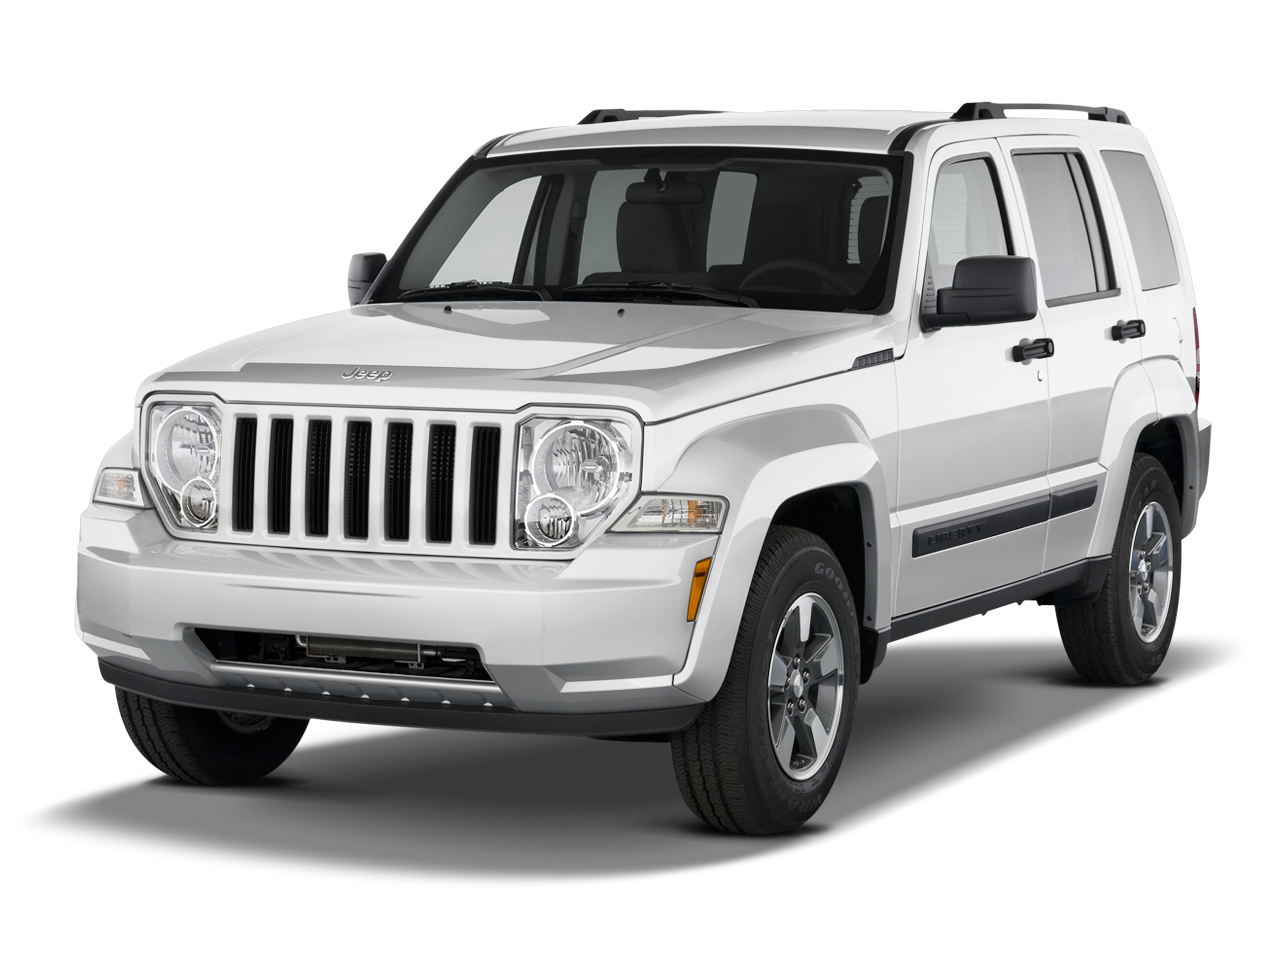 Jeep Liberty Mpg >> 2012 Jeep Liberty Review Ratings Specs Prices And Photos